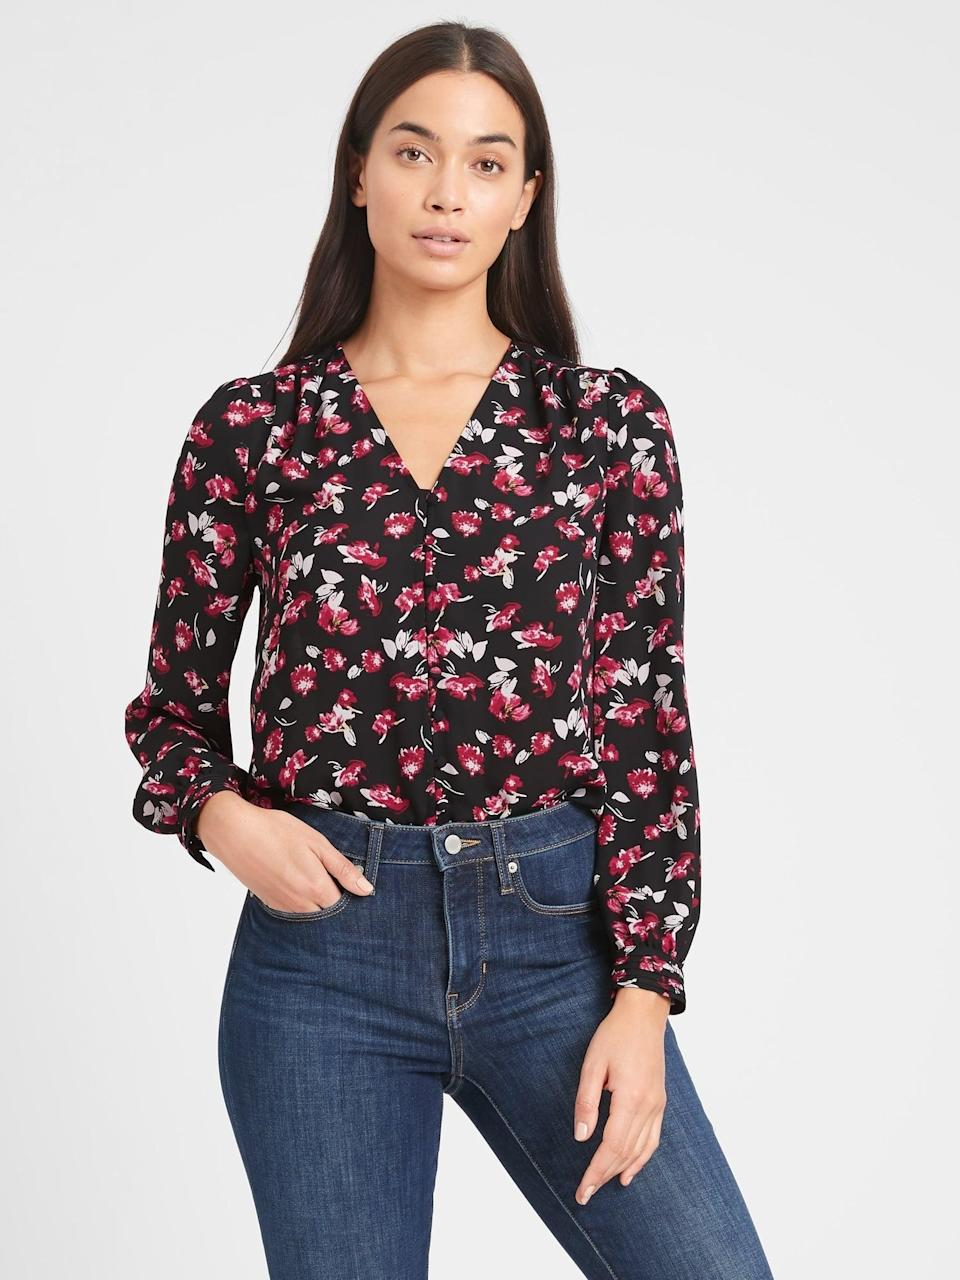 <p>Can't have enough floral blouses. For a great deal, pair this <span>Banana Republic Floral V-Neck Blouse</span> ($50, originally $85) with a black leather skirt and loafers!</p>